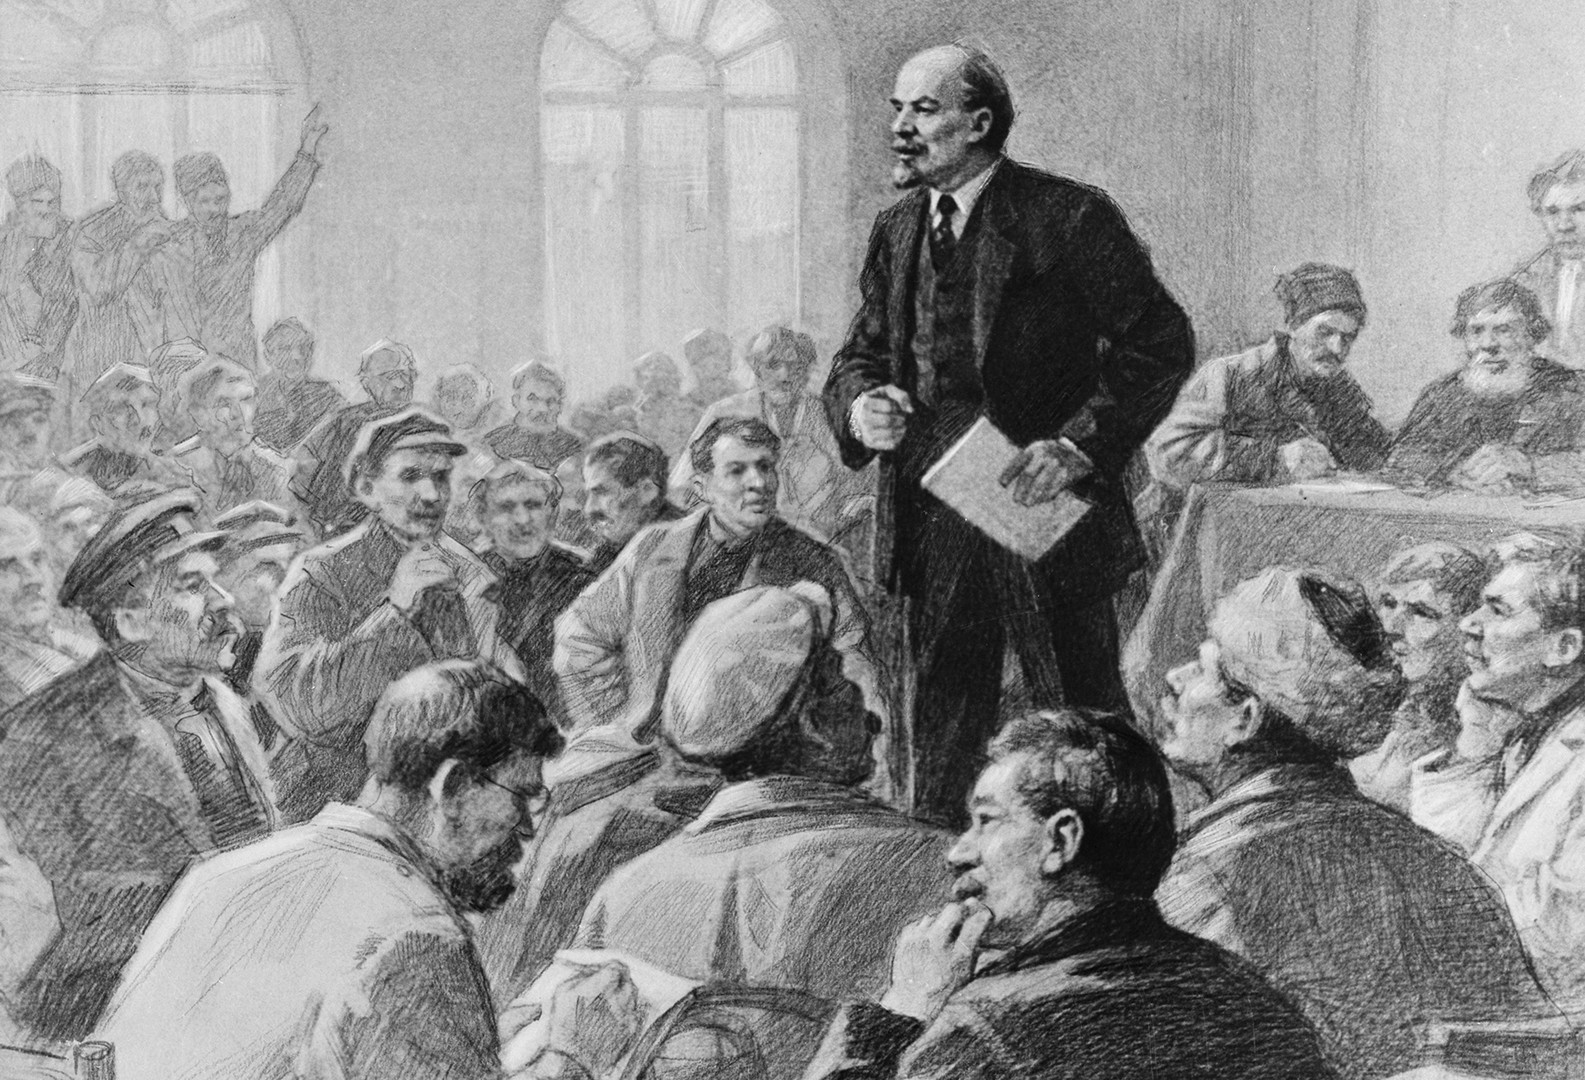 Vladimir Lenin gives a speech at a meeting.